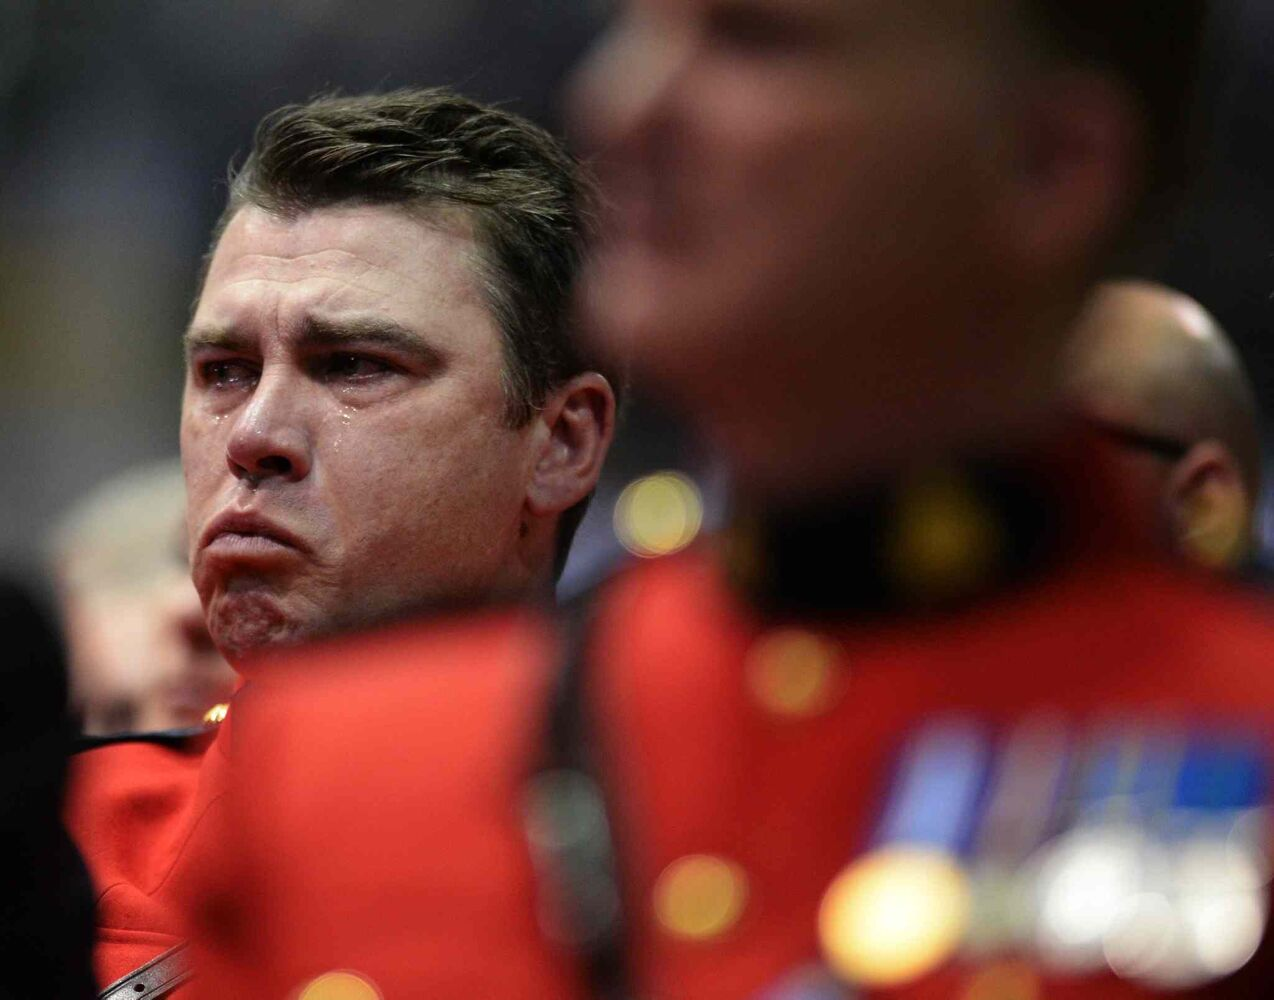 An RCMP officer tries to contain his emotions at the RCMP regimental funeral on Tuesday (Sean Kilpatrick / The Canadian Press)